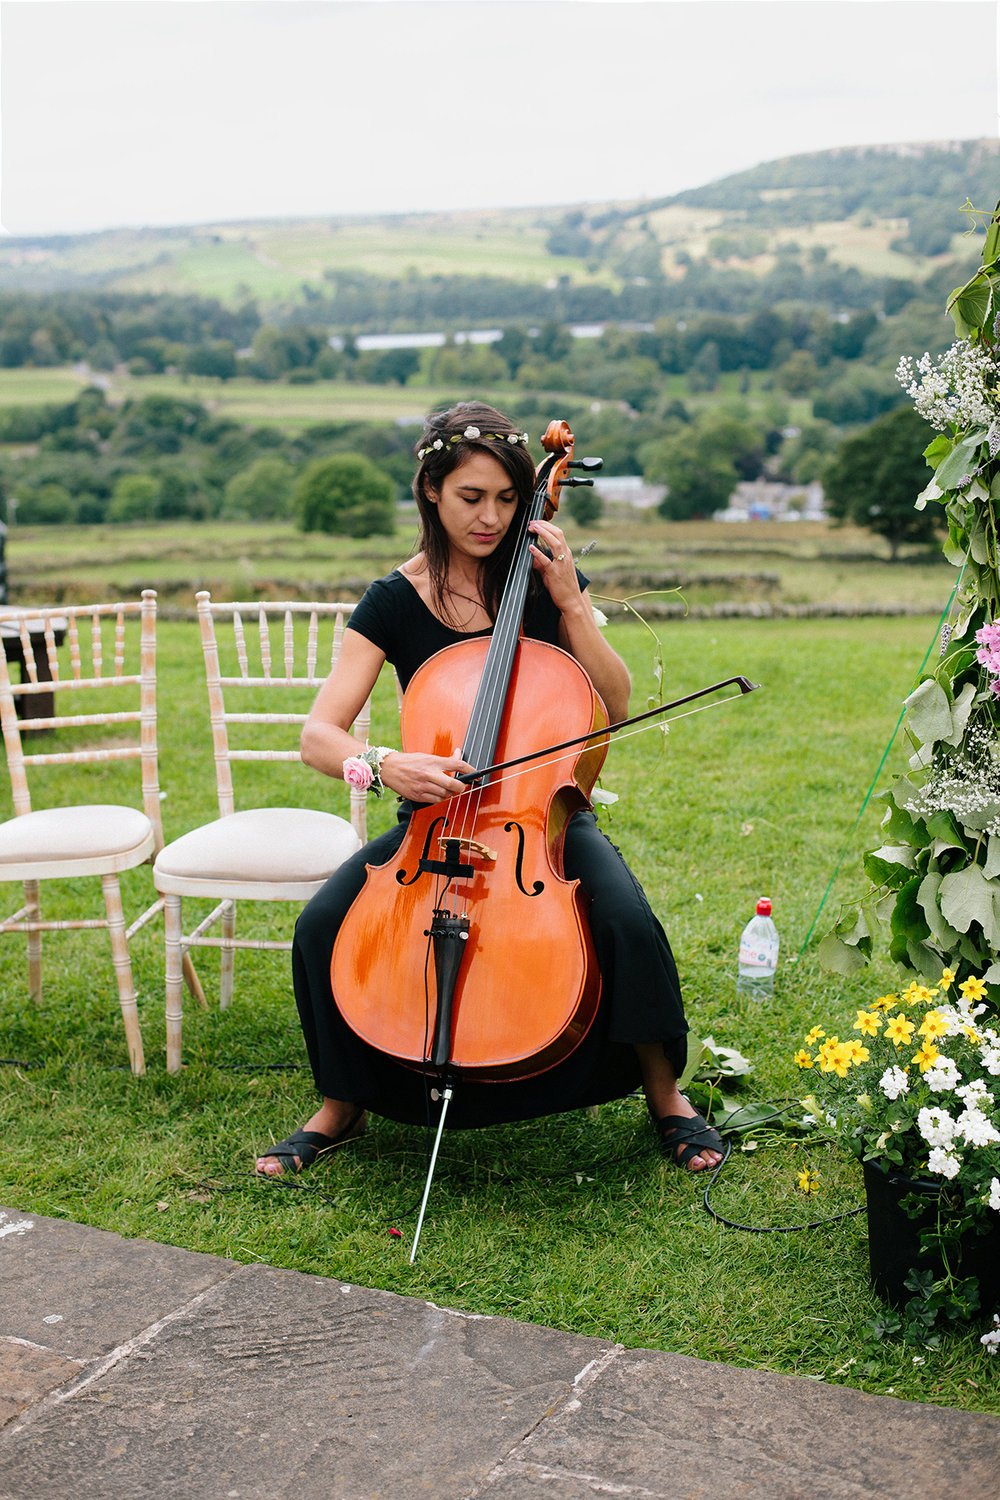 Suzy Plays the Cello, Wedding of Hannele & Enys, Sheffield, England, UK